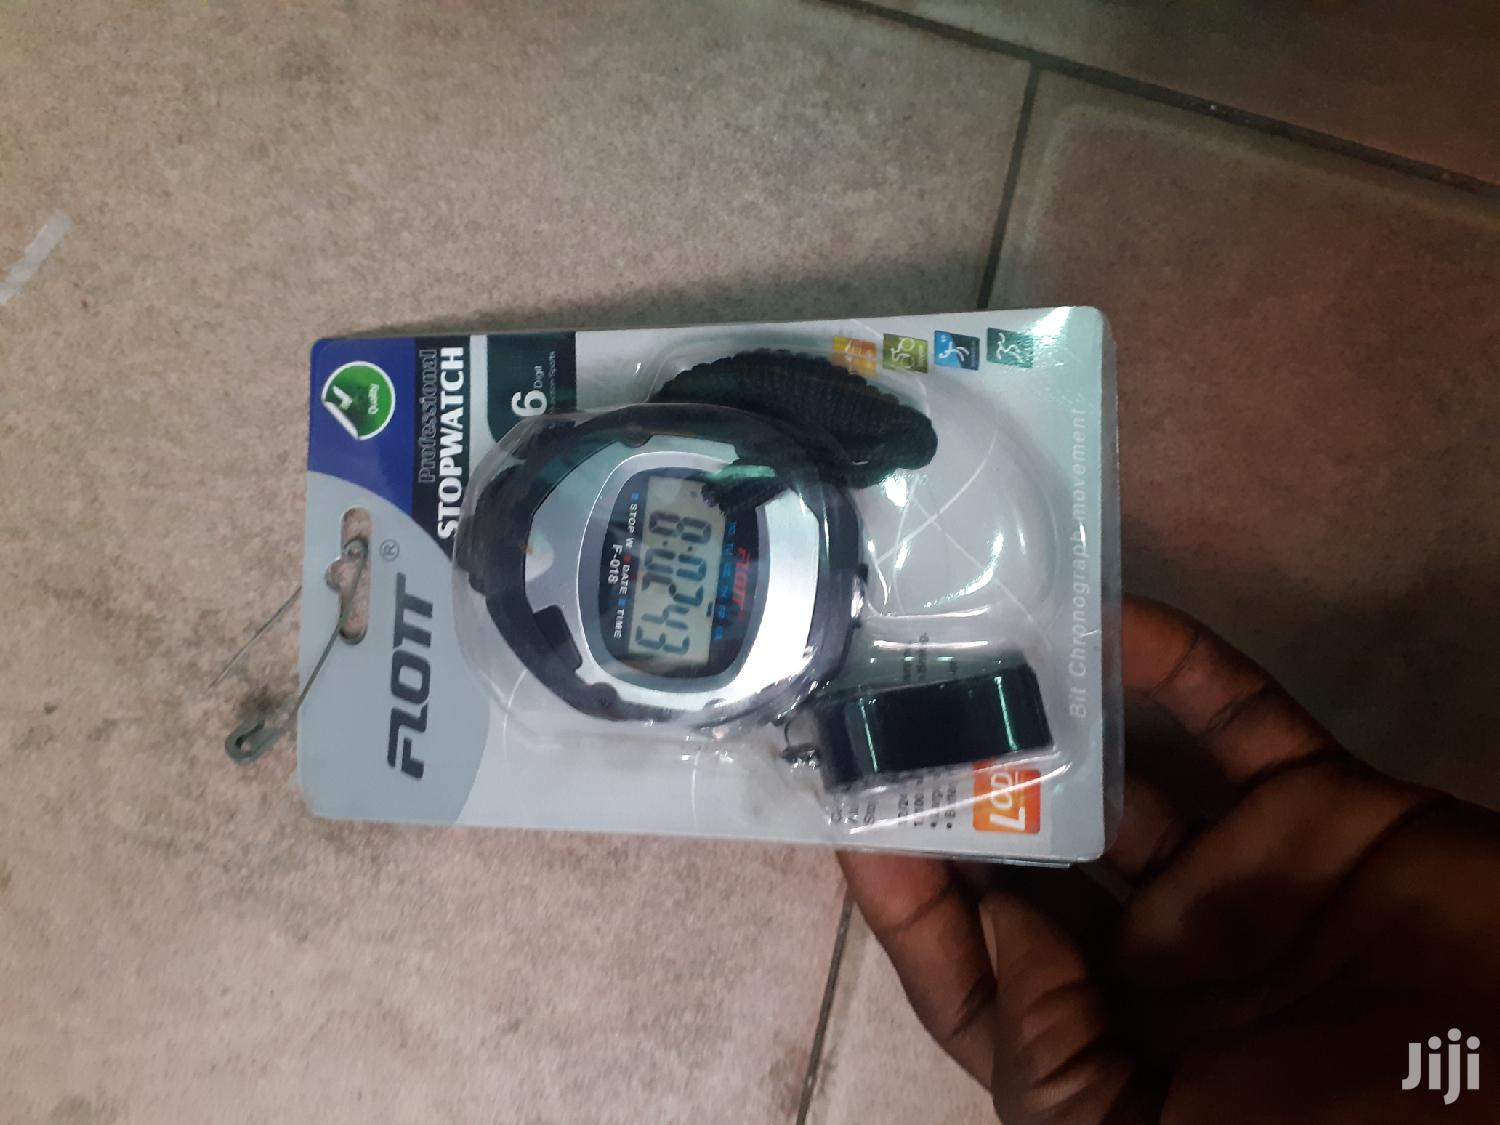 Original Whistle Ans Timer At Cool Price | Sports Equipment for sale in Dansoman, Greater Accra, Ghana